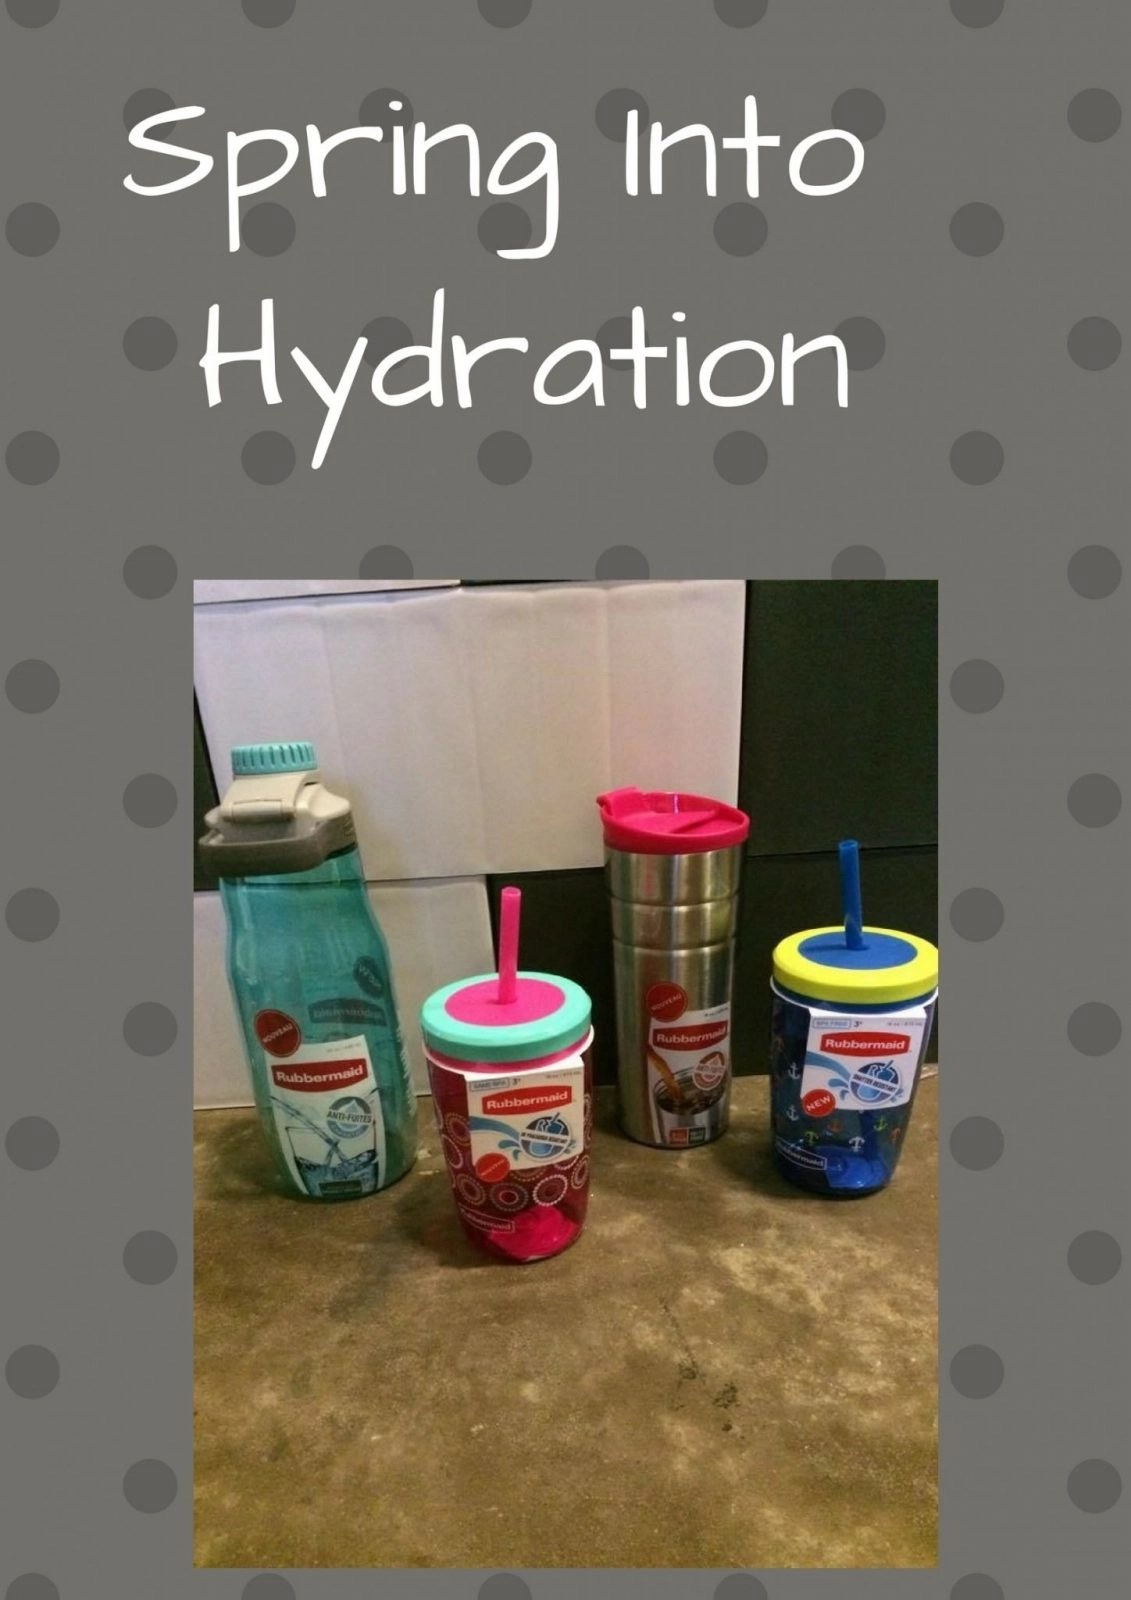 Spring Into Hydration - Rubbermaid Leak-Proof Drink Containers